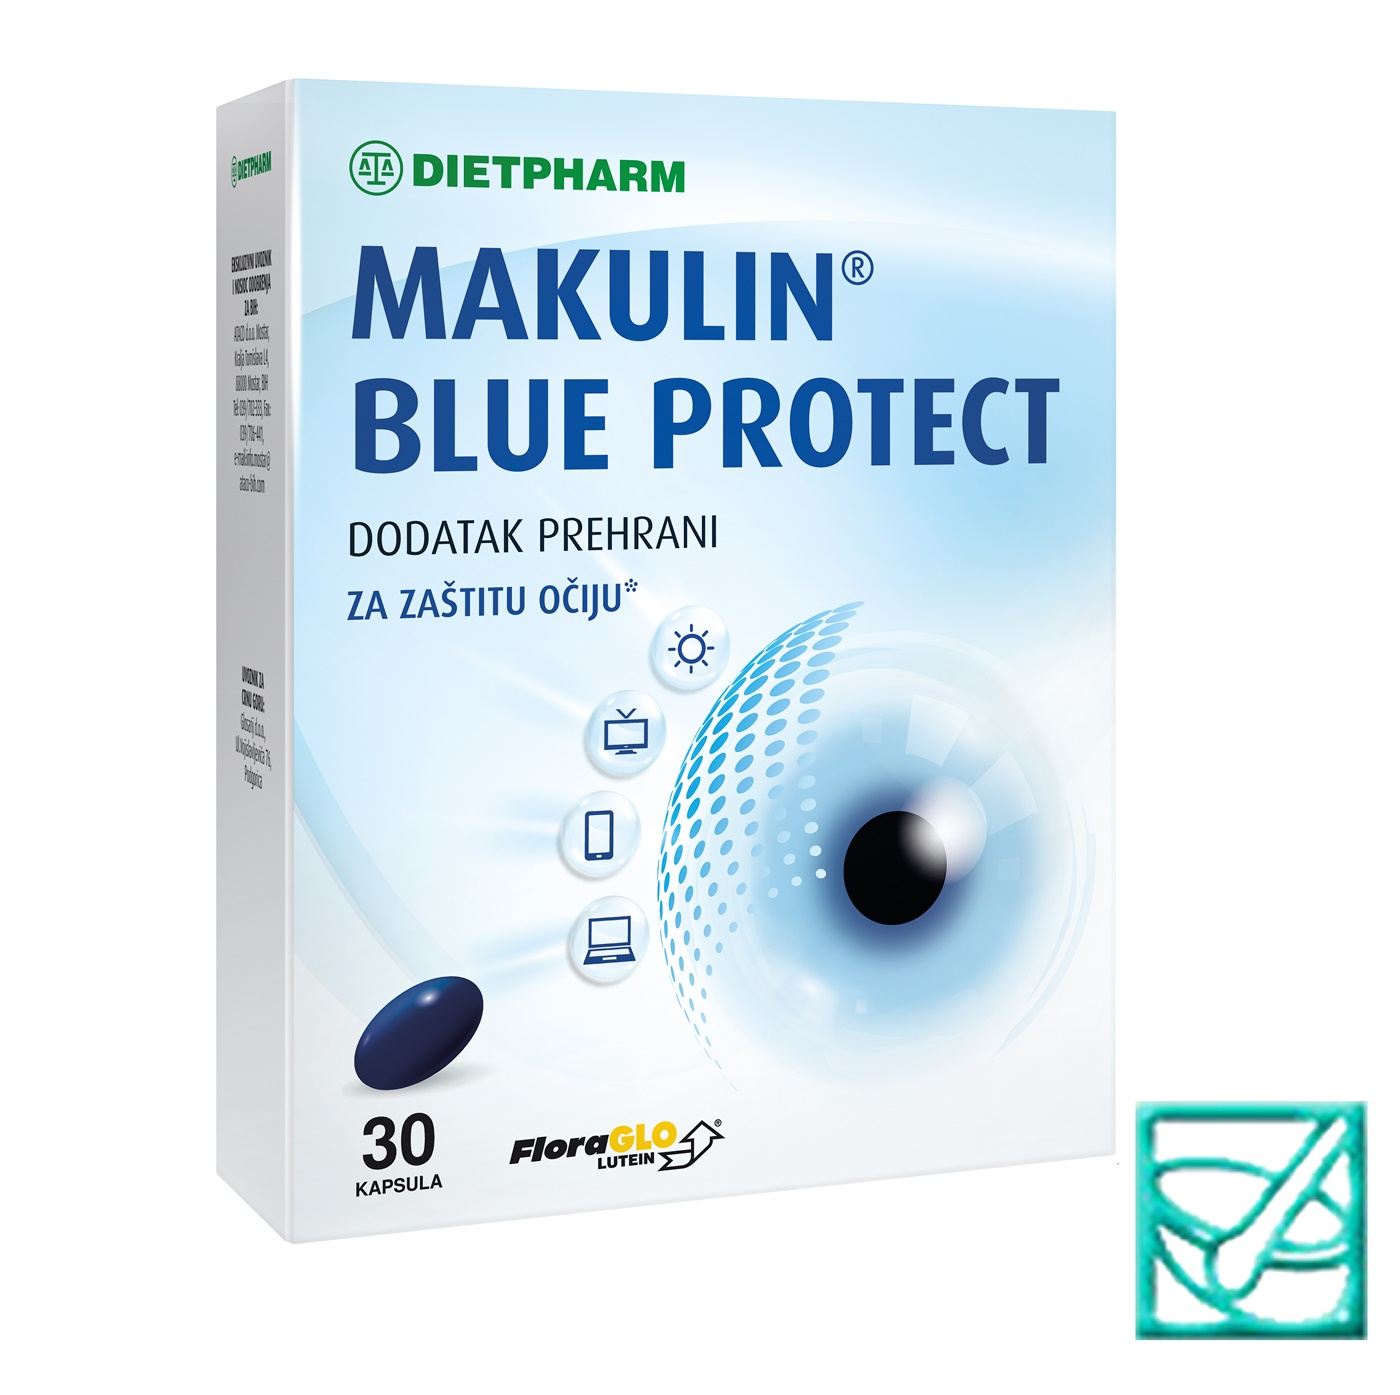 FIDI MAKULIN BLUE PROTECT caps a 30